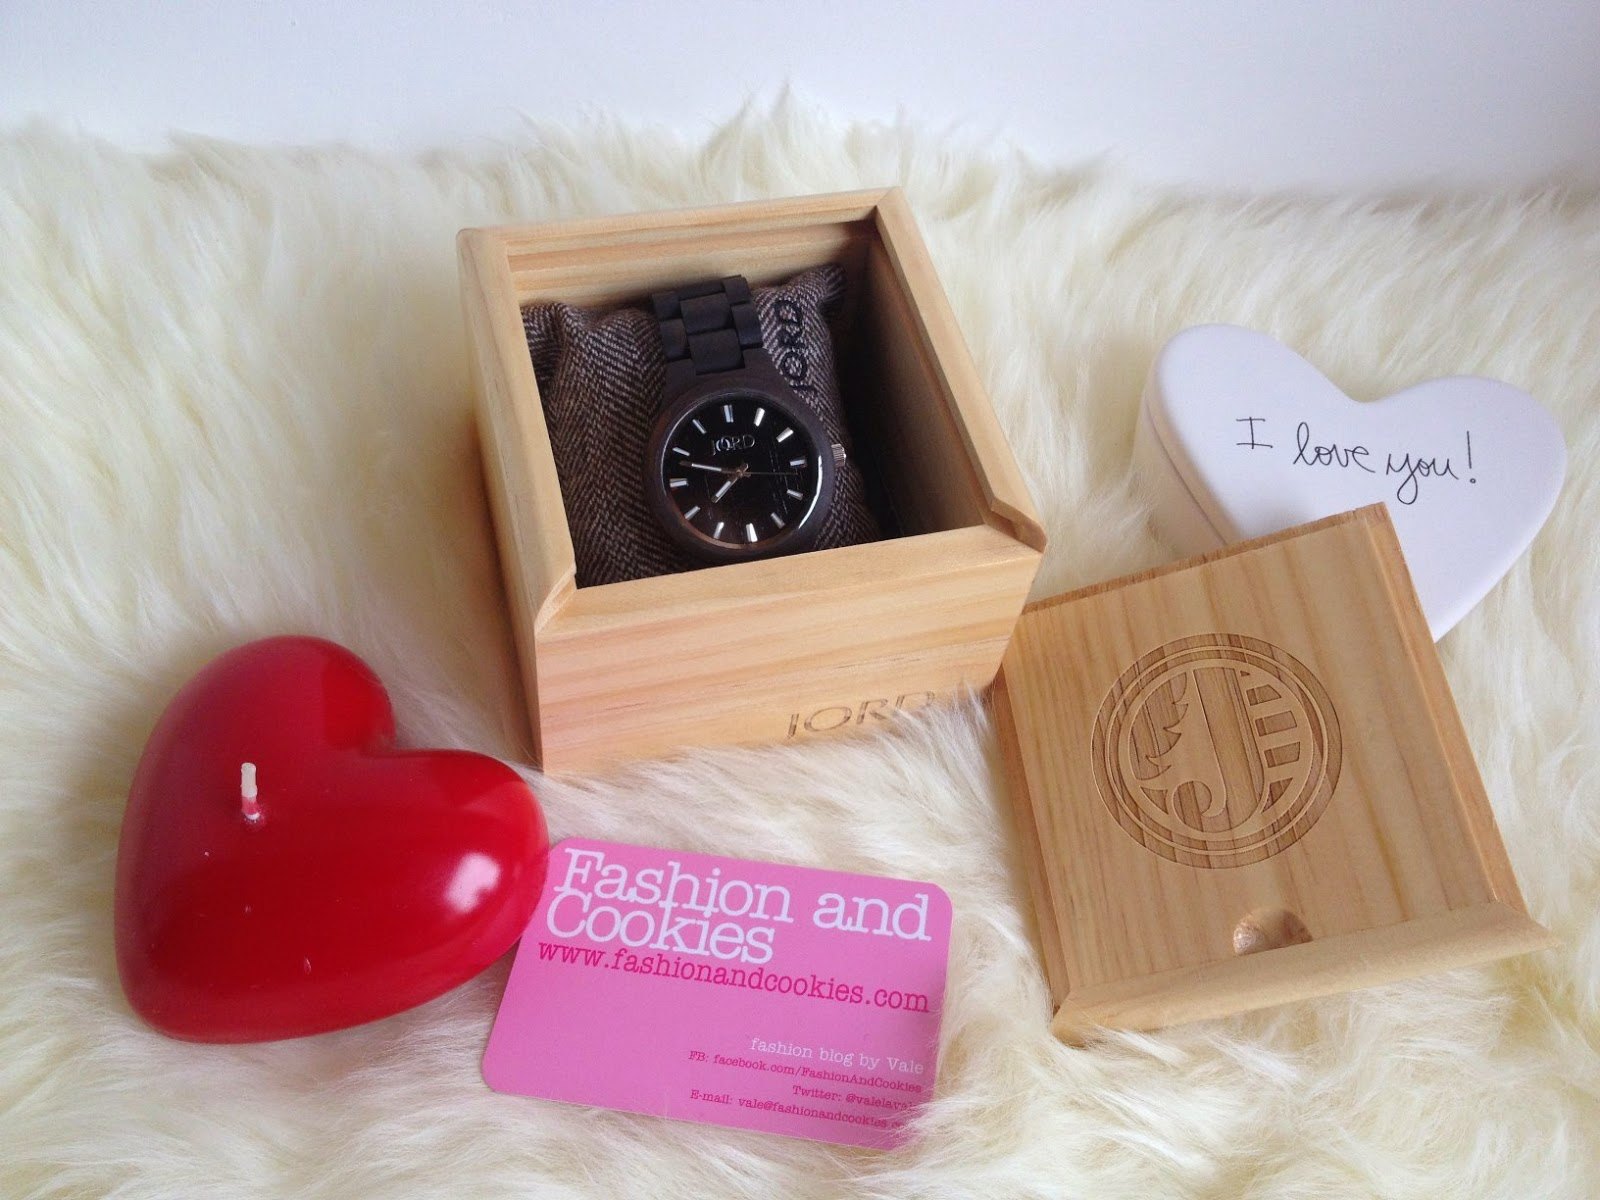 Jord wood watches, Jord Fieldcrest wood watch, wooden watches, orologi in legno, Fashion and Cookies fashion blog, fashion blogger